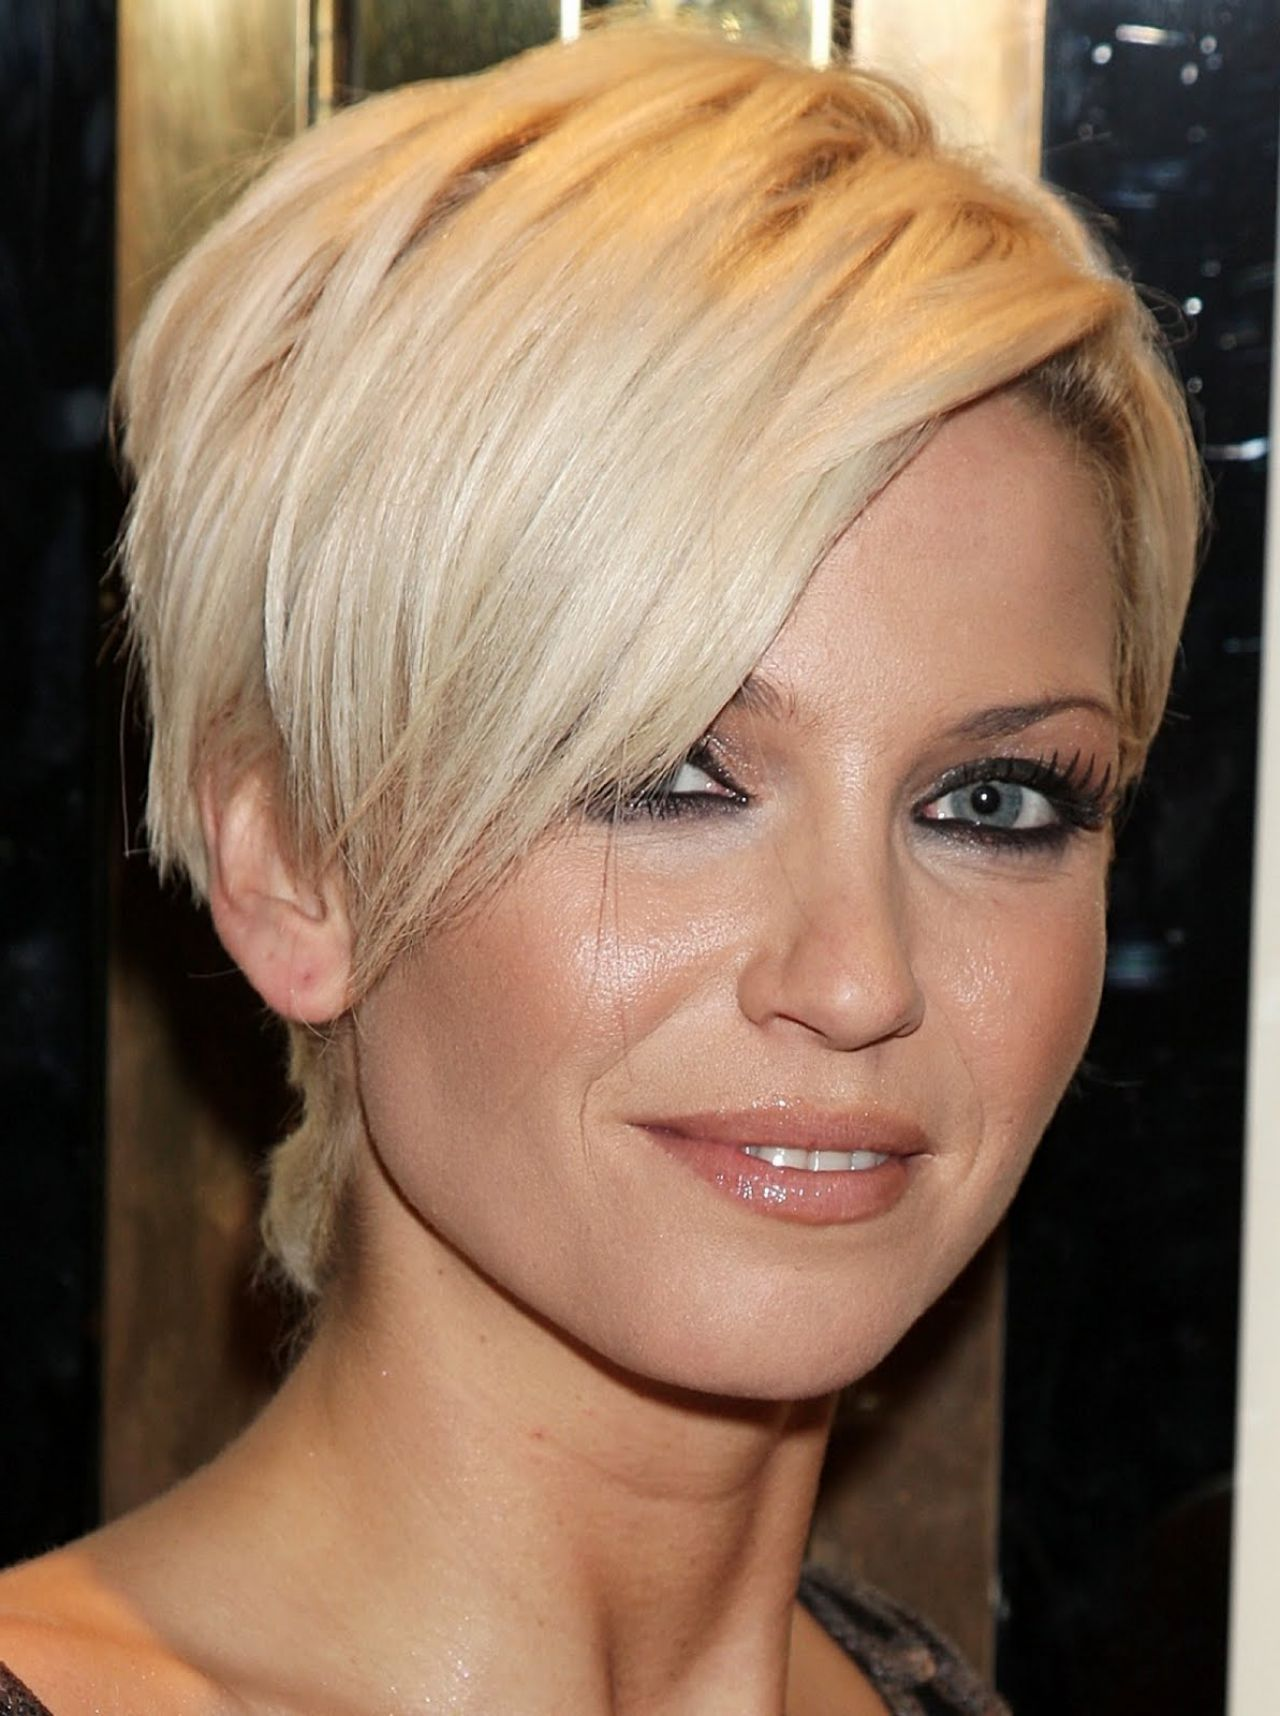 Short haircuts for women that will look flattering top hair